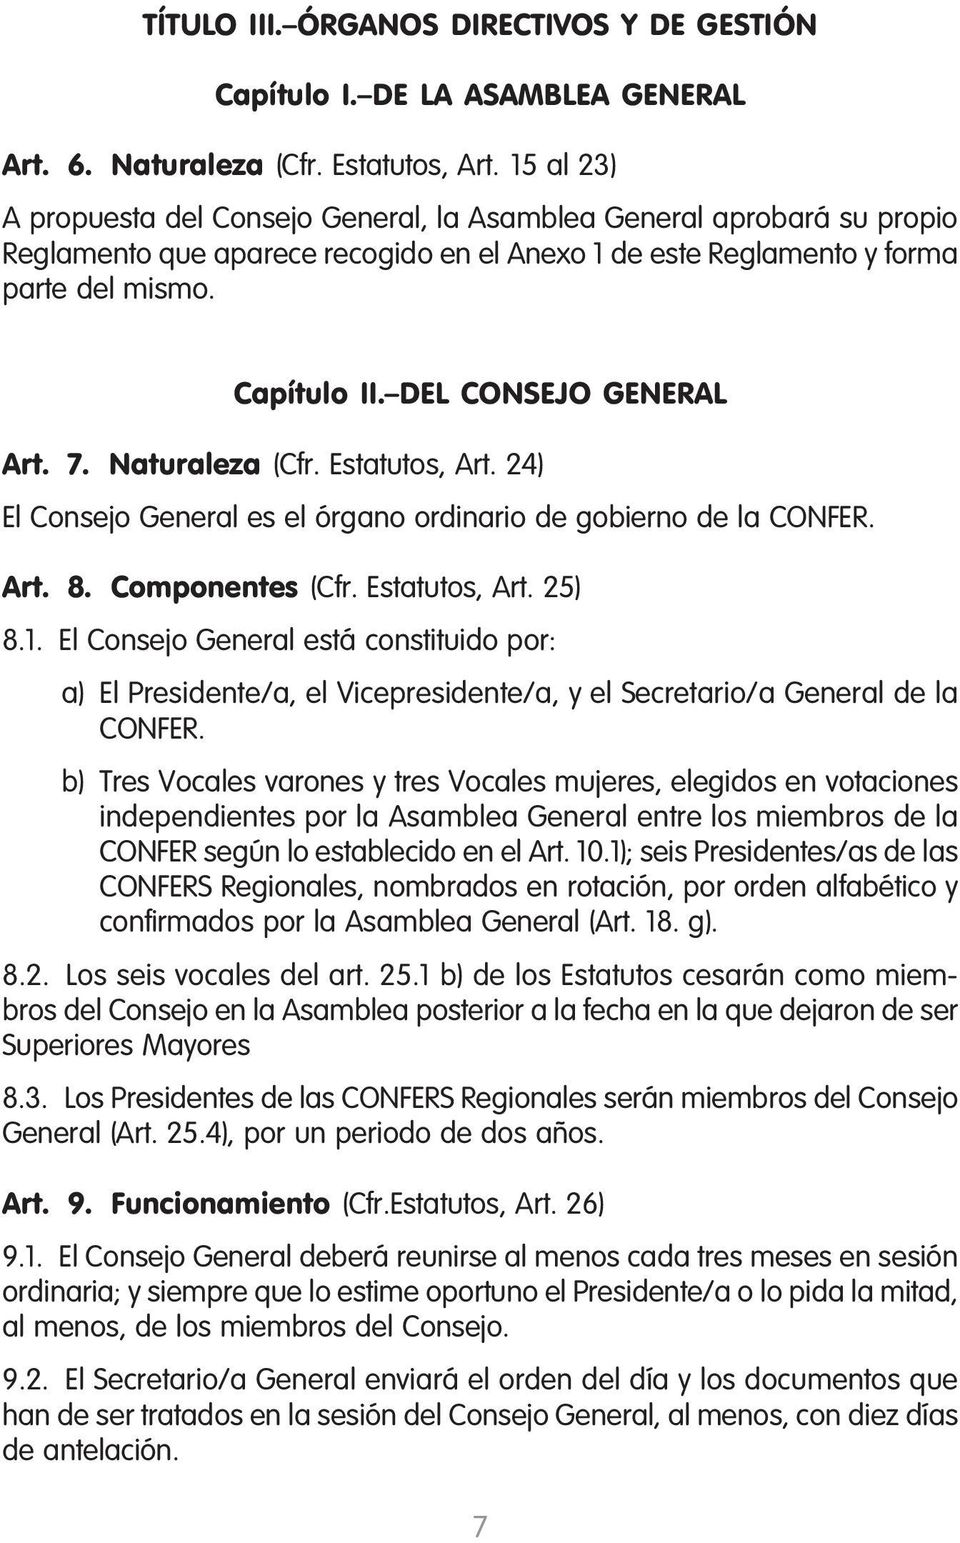 DEL CONSEJO GENERAL Art. 7. Naturaleza (Cfr. Estatutos, Art. 24) El Consejo General es el órgano ordinario de gobierno de la CONFER. Art. 8. Componentes (Cfr. Estatutos, Art. 25) 8.1.